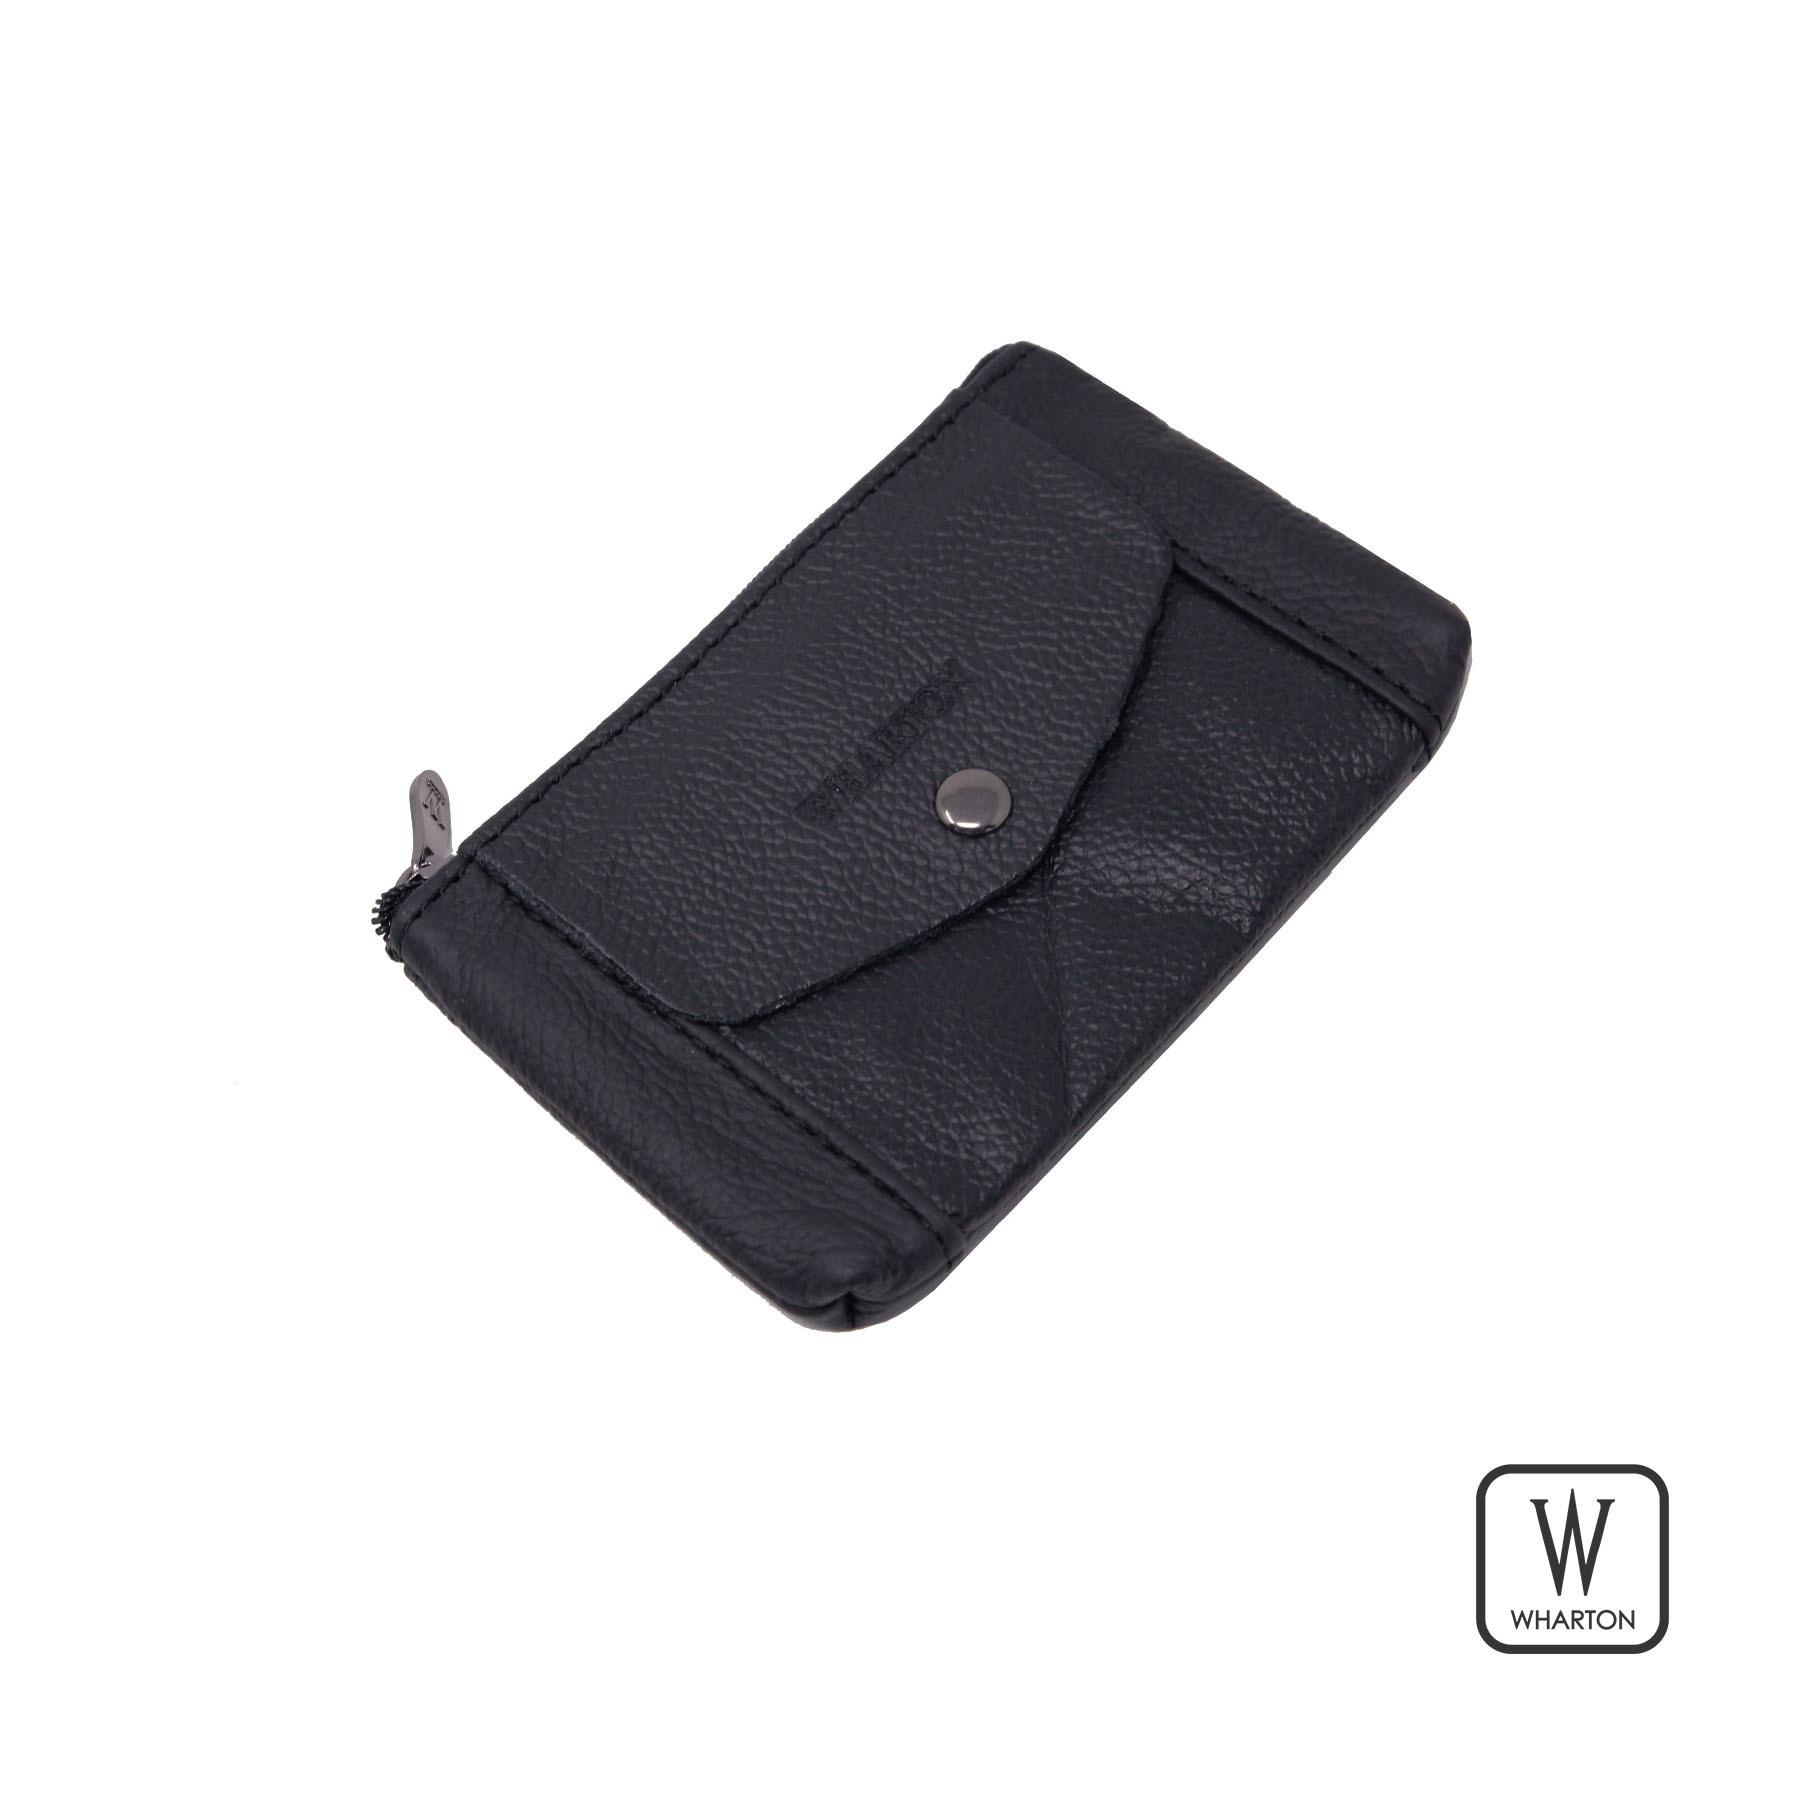 Wharton Leather Zipper Coin Purse, Coin Pouch Change Holder for Men, Black